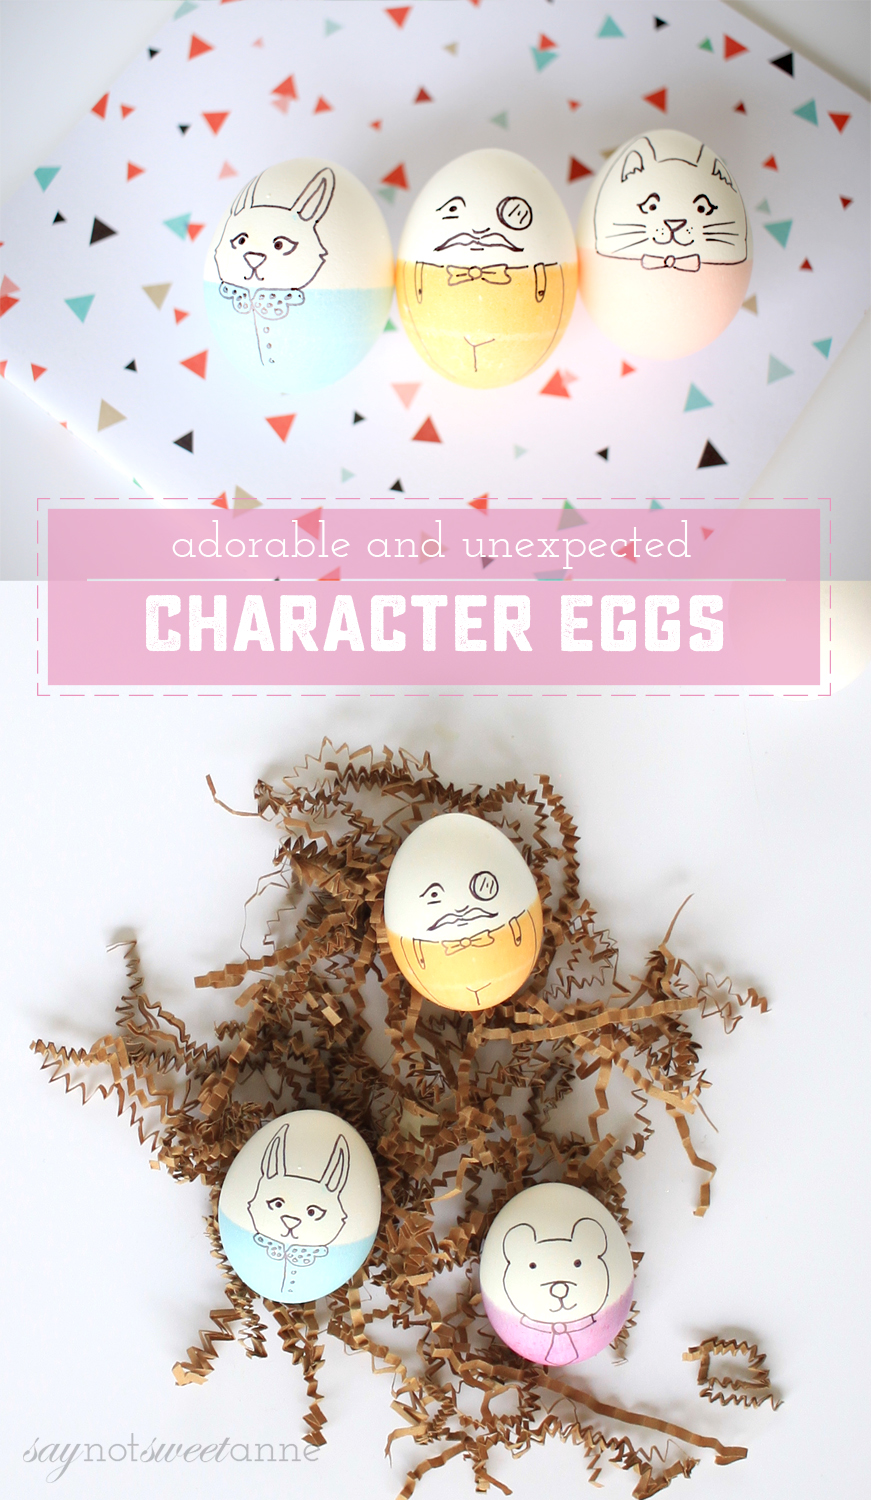 How To Make Absolutely Adorable Character Easter Eggs. A simply dye job and some marker make these beautiful eggs! | saynotsweetanne.com